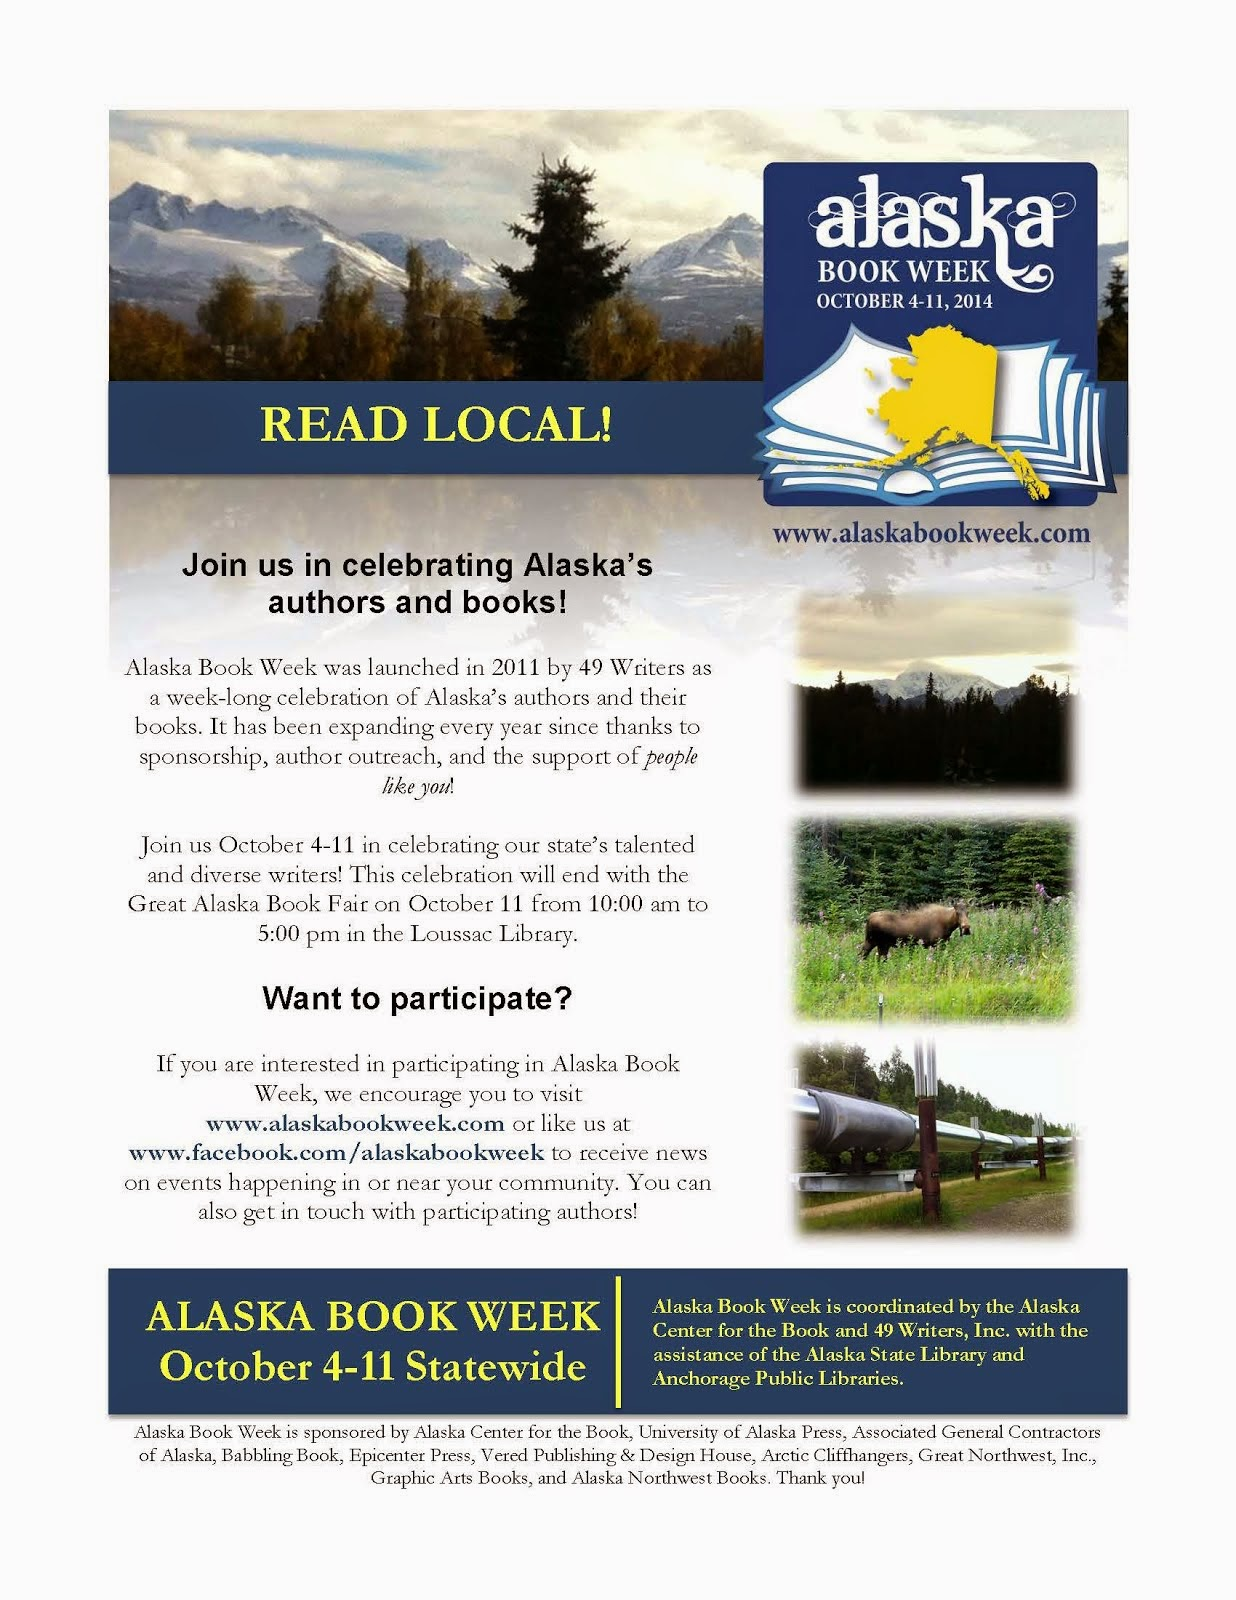 ORDER YOUR ALASKA BOOK WEEK POSTERS AND BOOKMARKS TODAY!